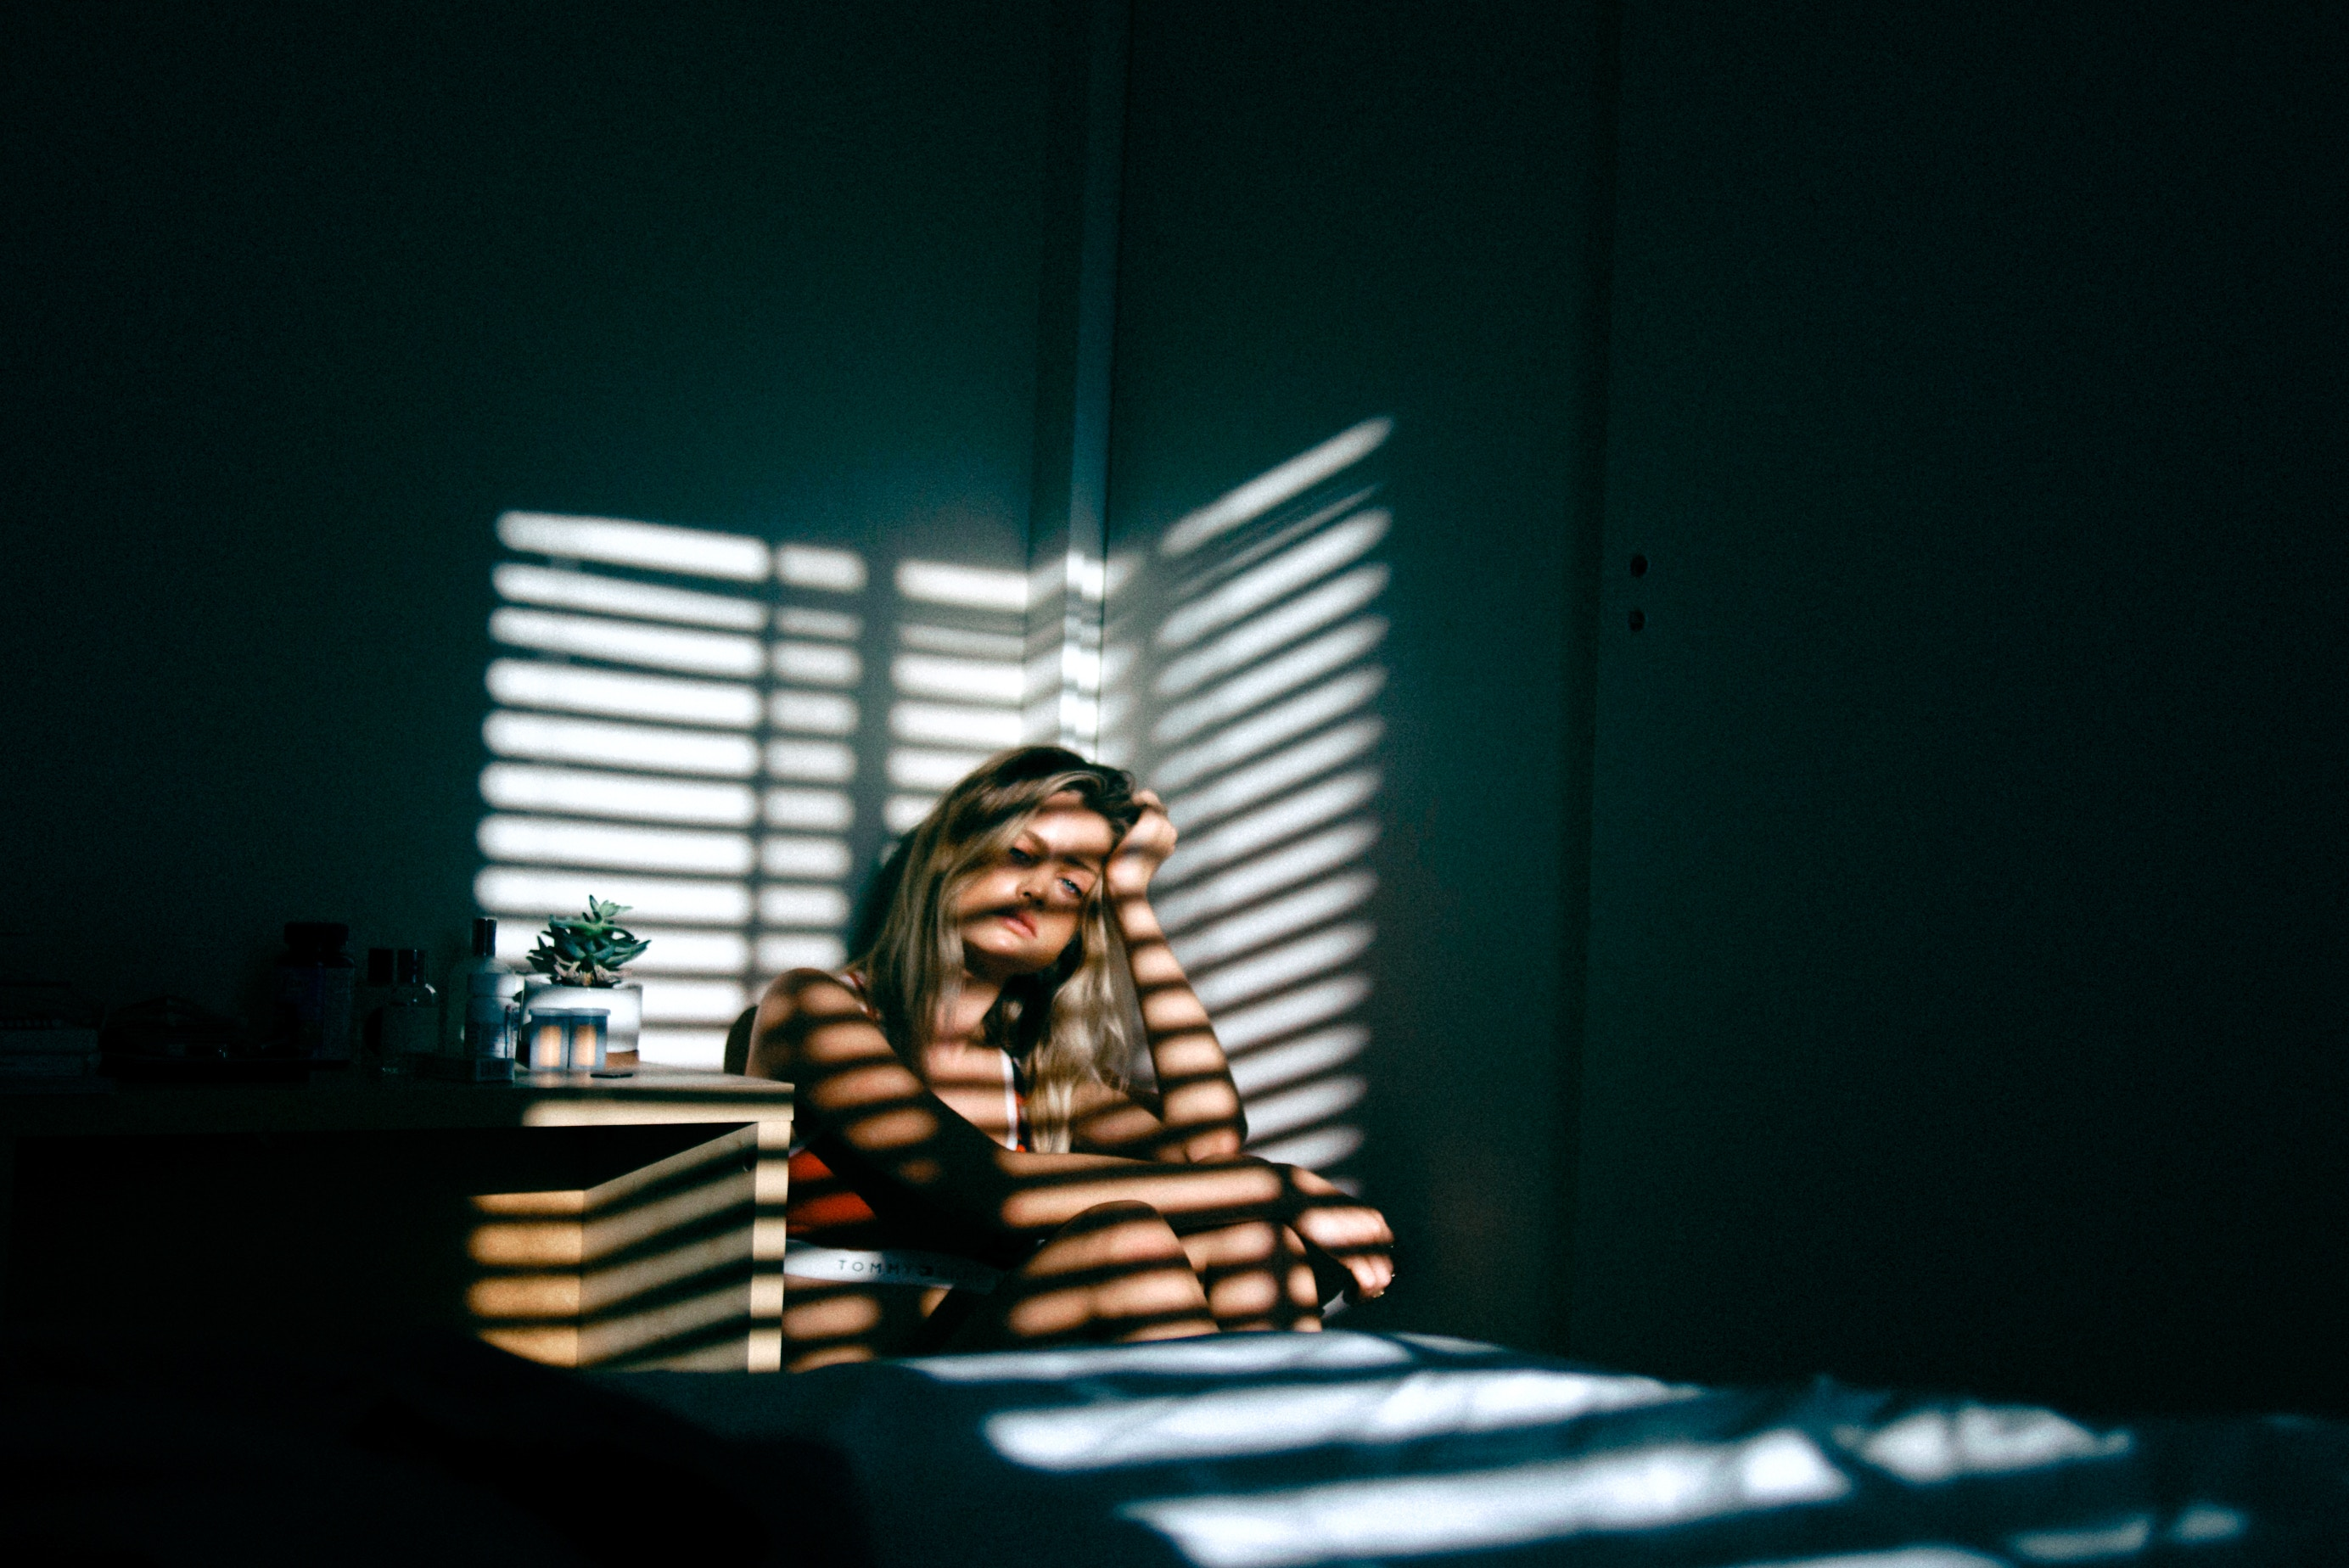 Woman Sitting In a Dark room, Experiencing Anxiety And Depression